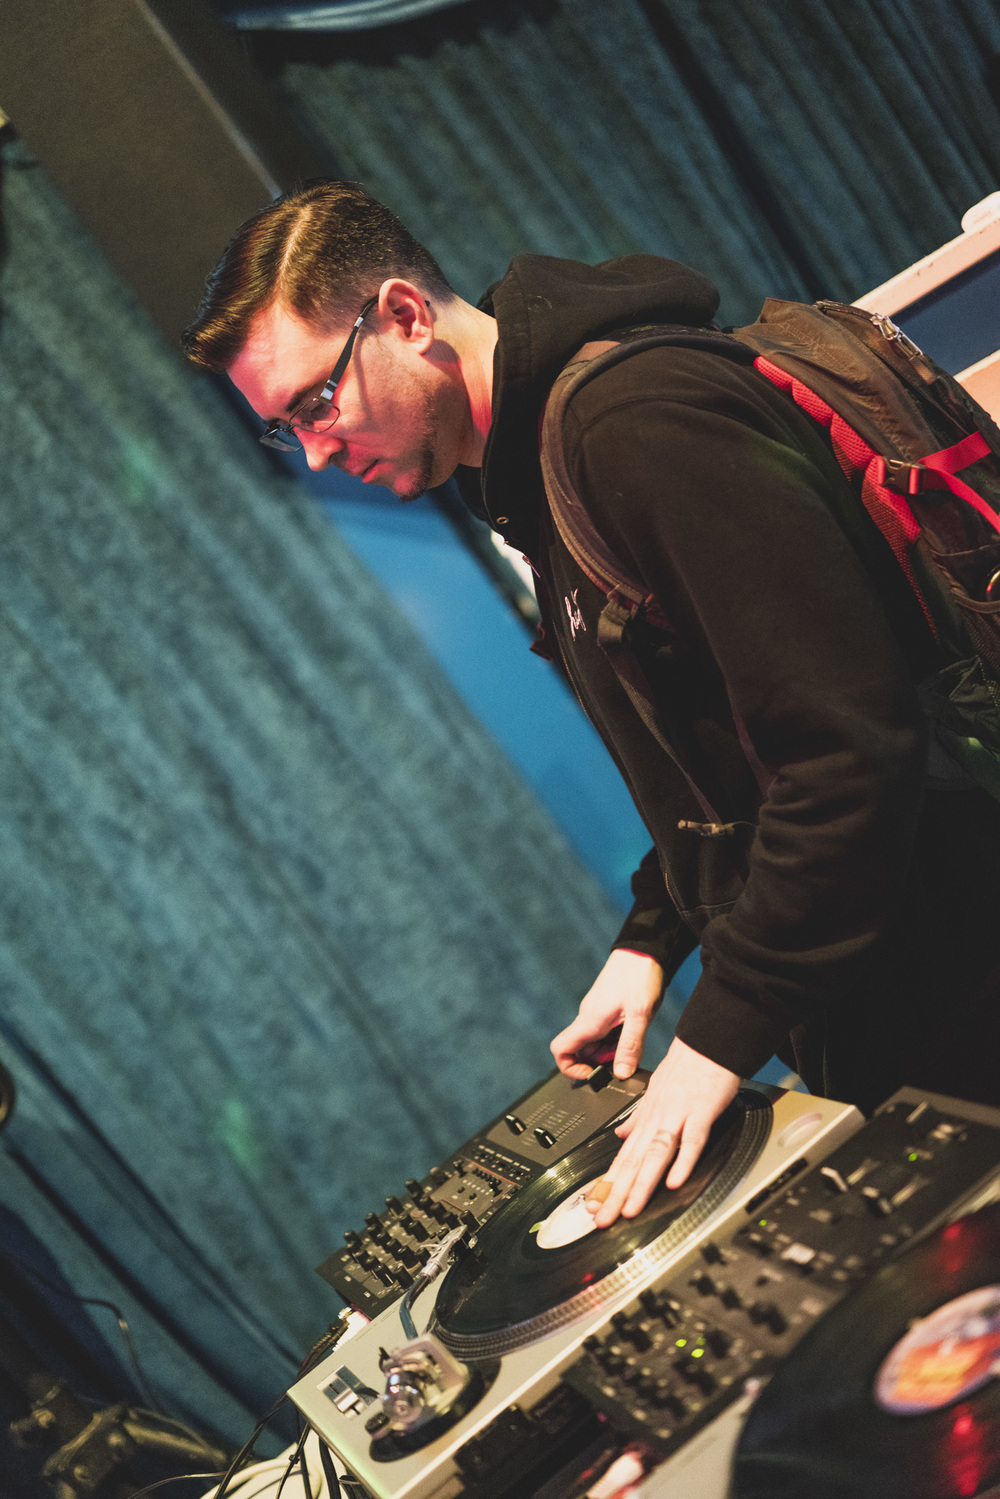 2016_03_03_Skratch Lounge_0007_Export.jpg